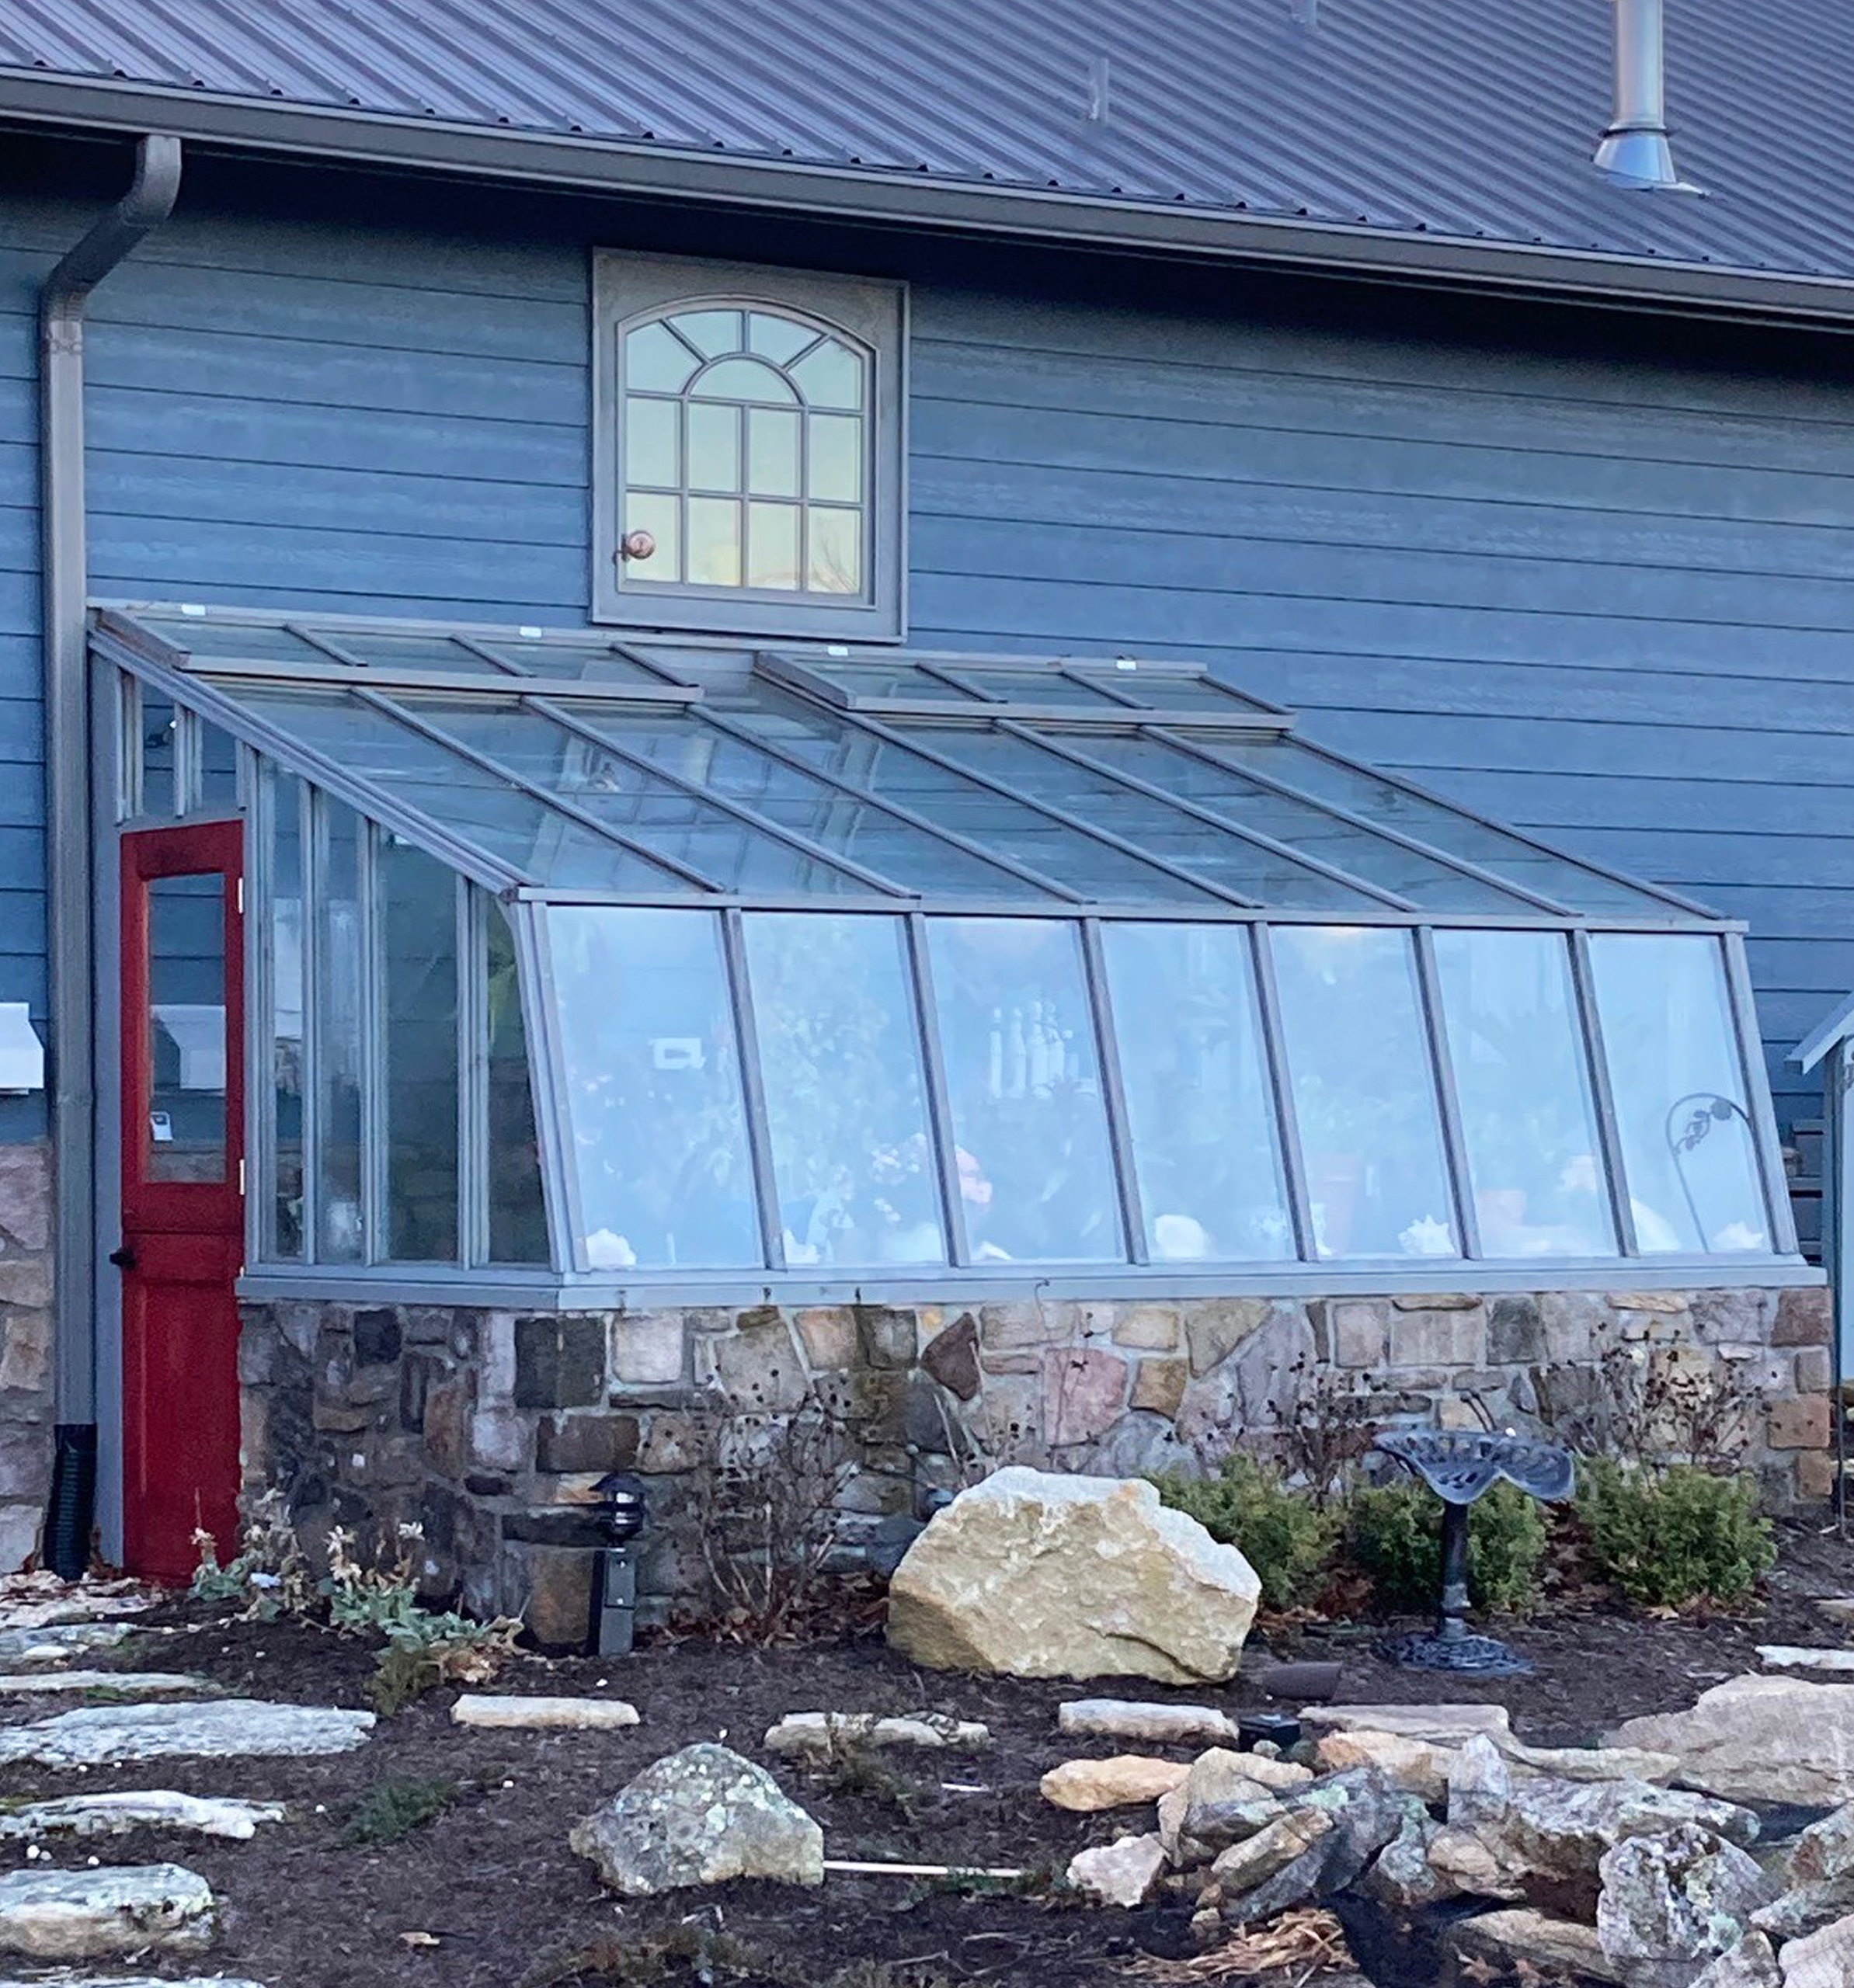 Tropic Lean-to Greenhouse